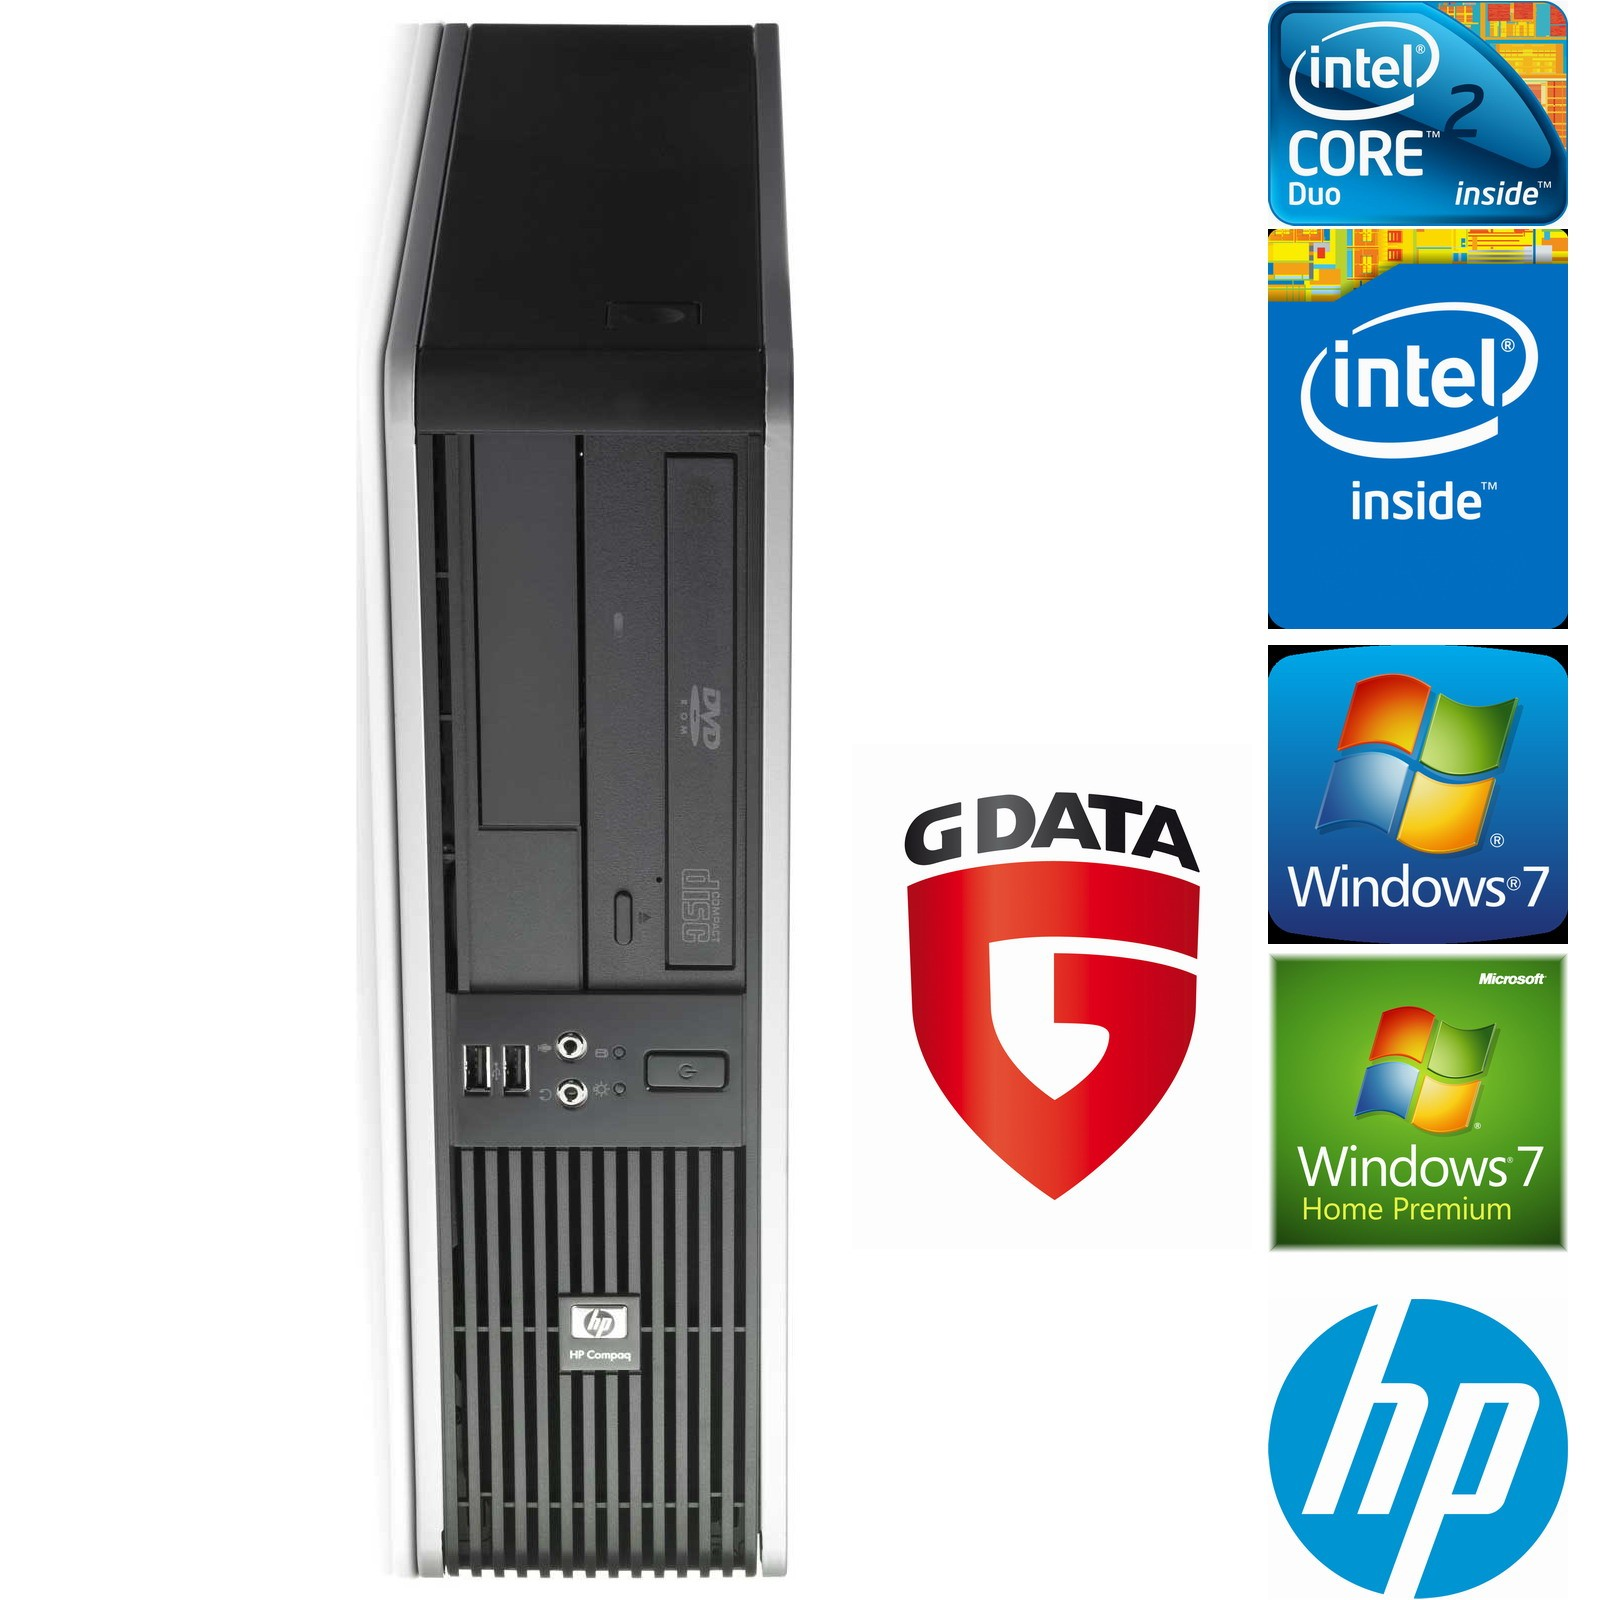 HP-Compaq-DC7900SFF-Core2Duo-E7400-2x2-8GHz-2GB-160GB-DVDRW-Win7-GData-IS